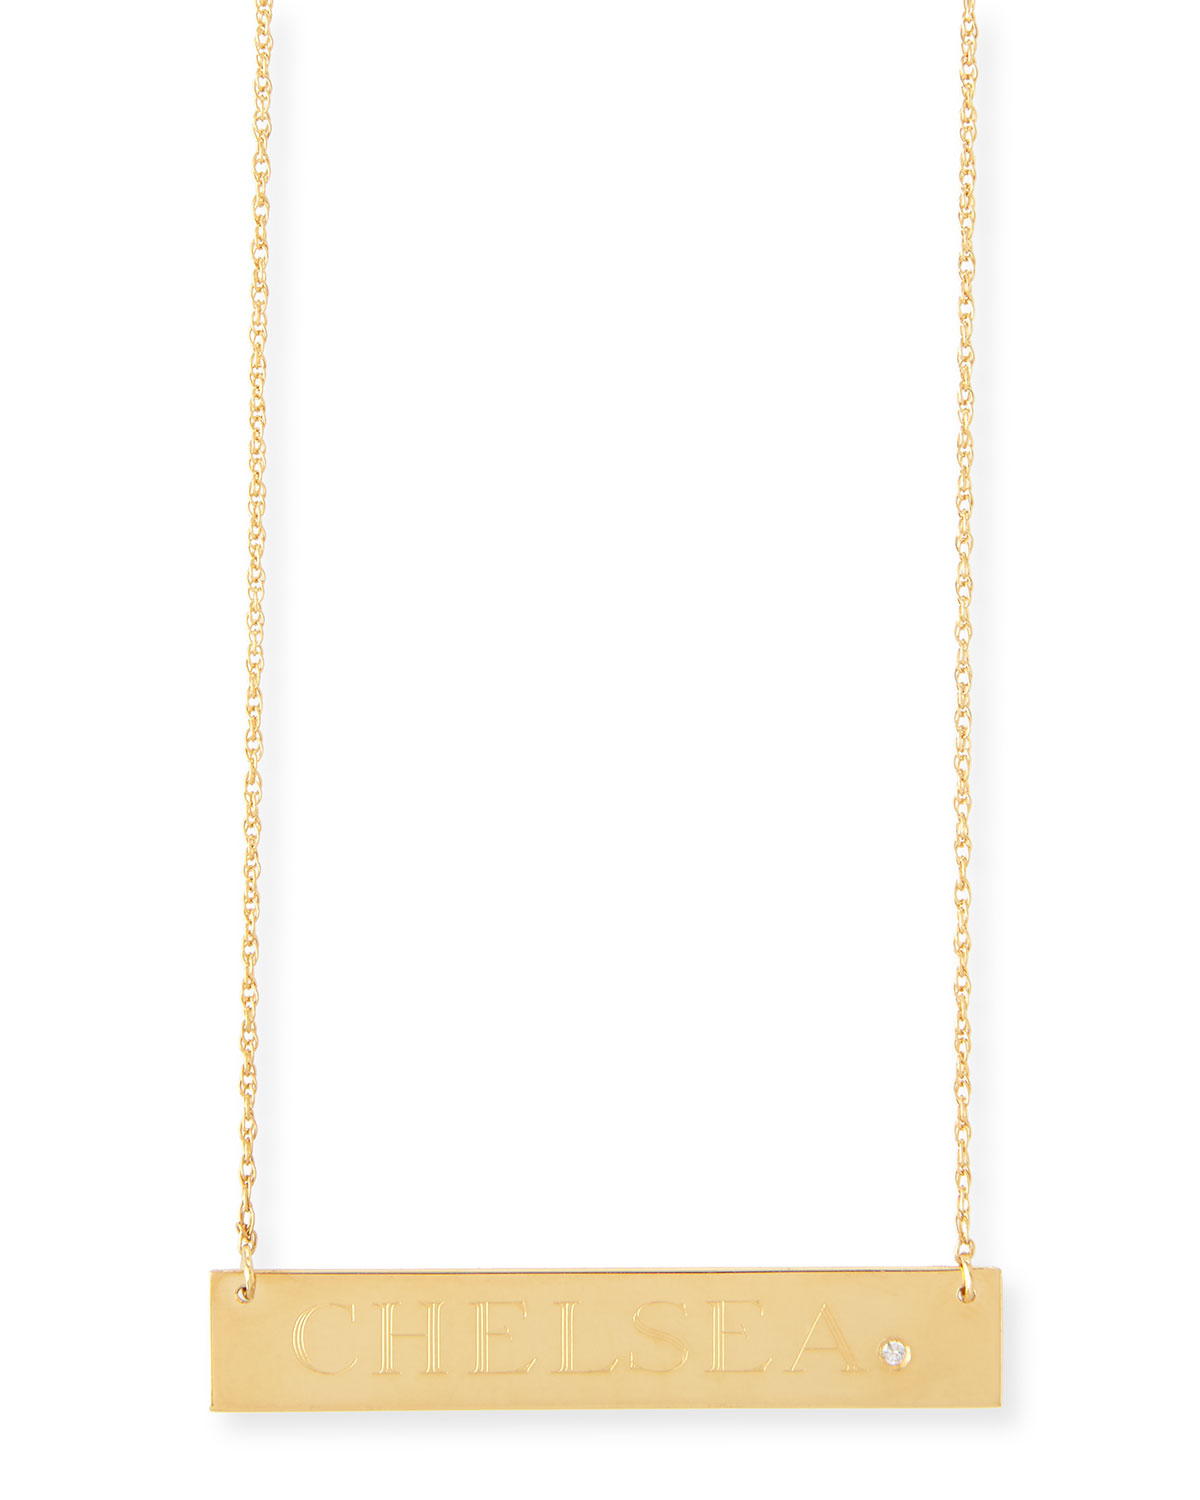 JENNIFER ZEUNER HARLEY DIAMOND BAR NECKLACE